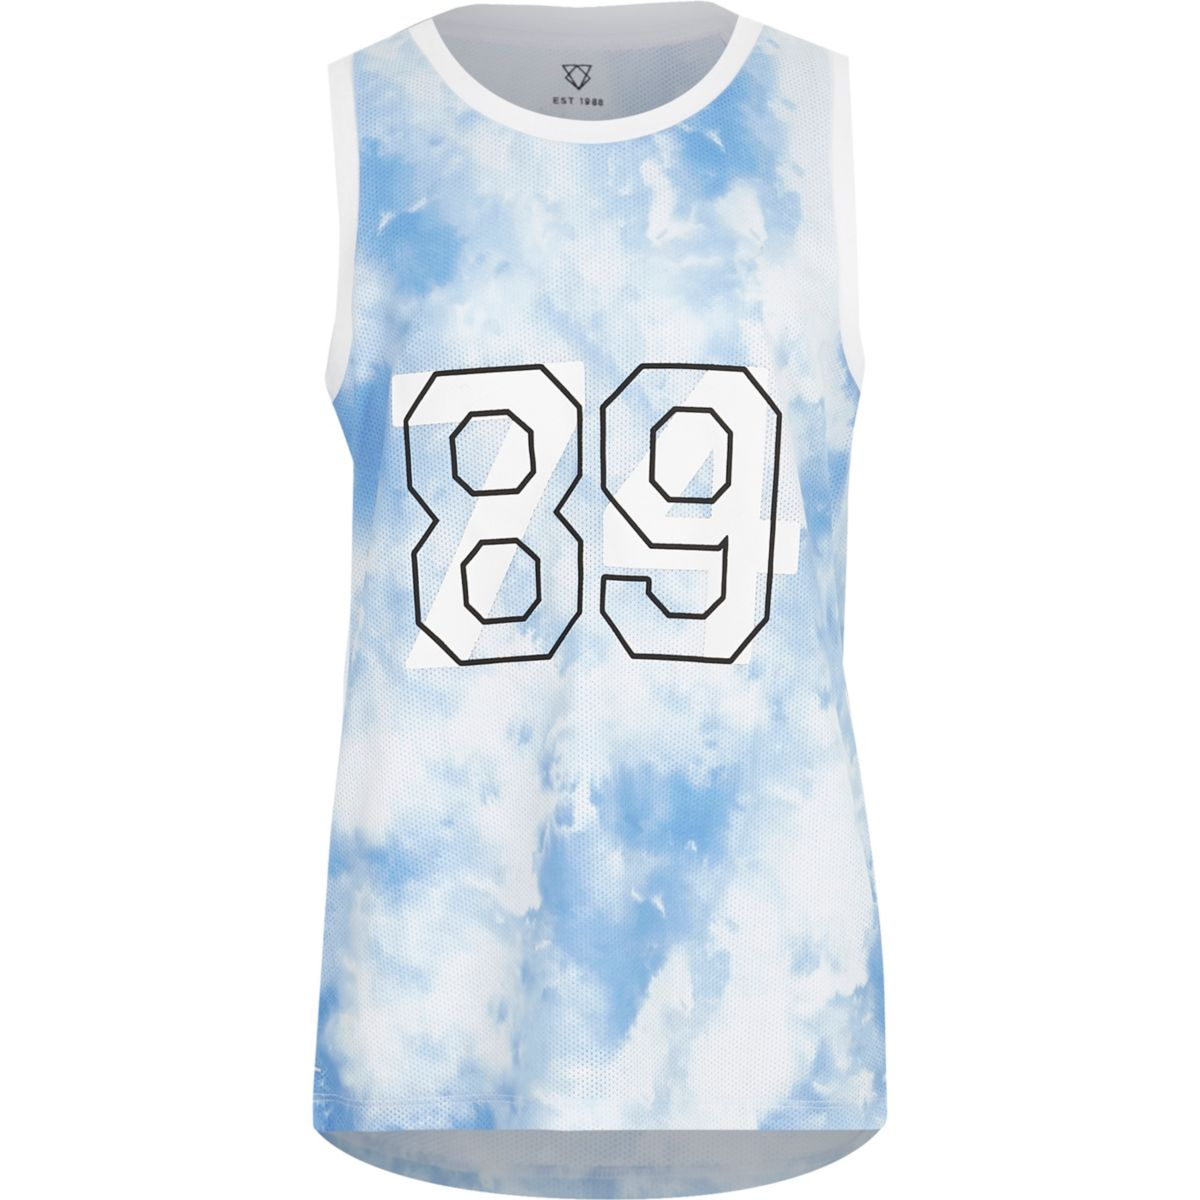 Boys blue cloud print mesh tank